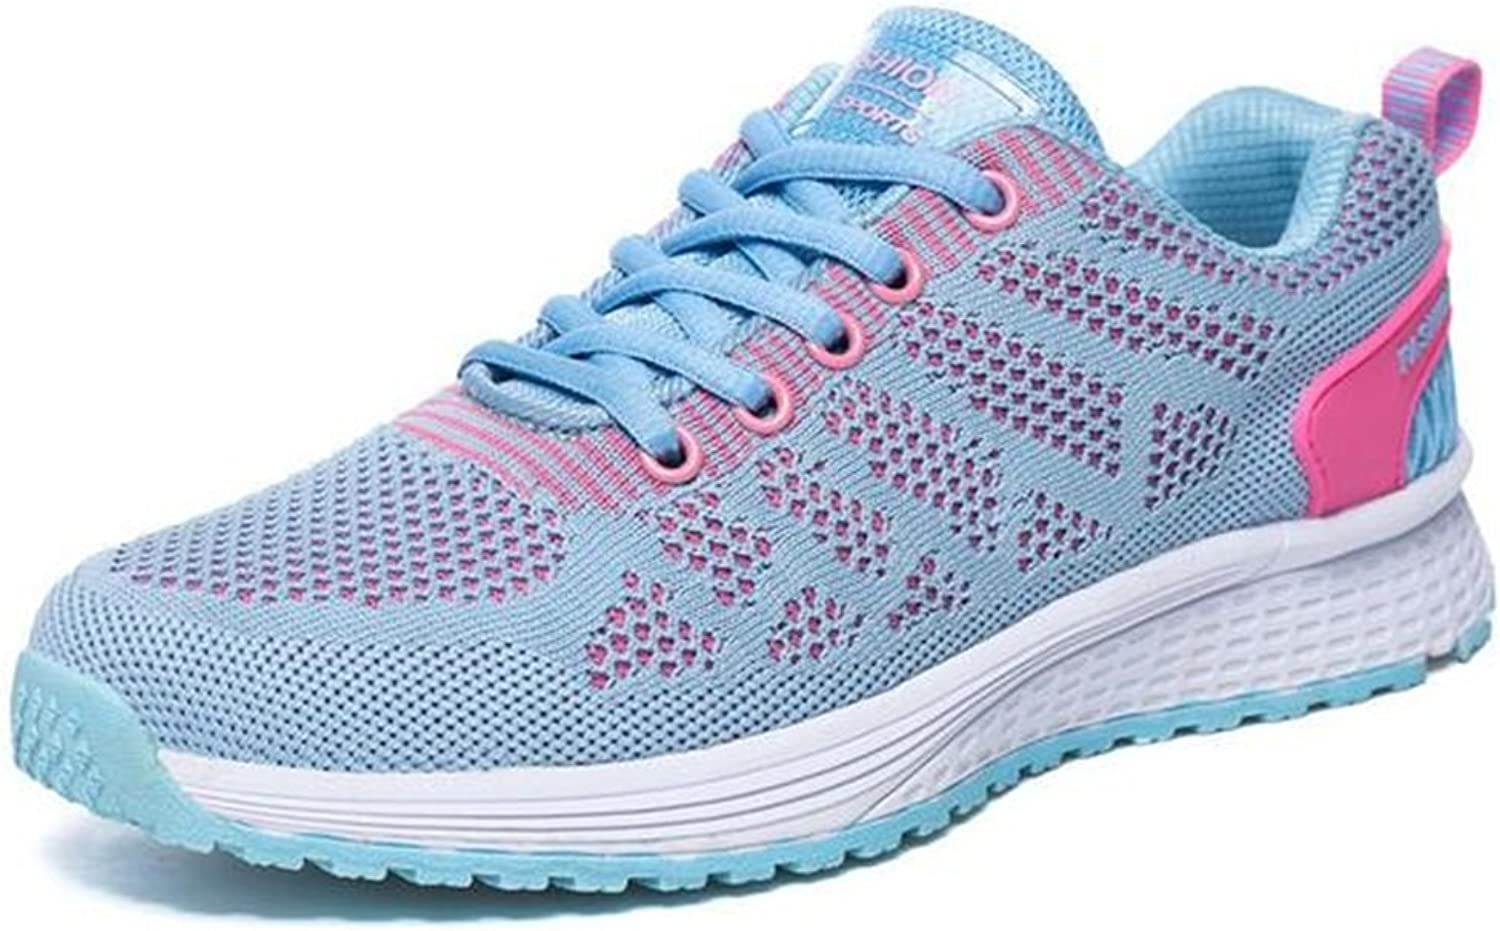 Exing Womens's shoes New Sneakers,Light Soles Running shoes,mesh Ladies shoes,Casual Outdoor shoes,Breathable Gym Sports Trainers